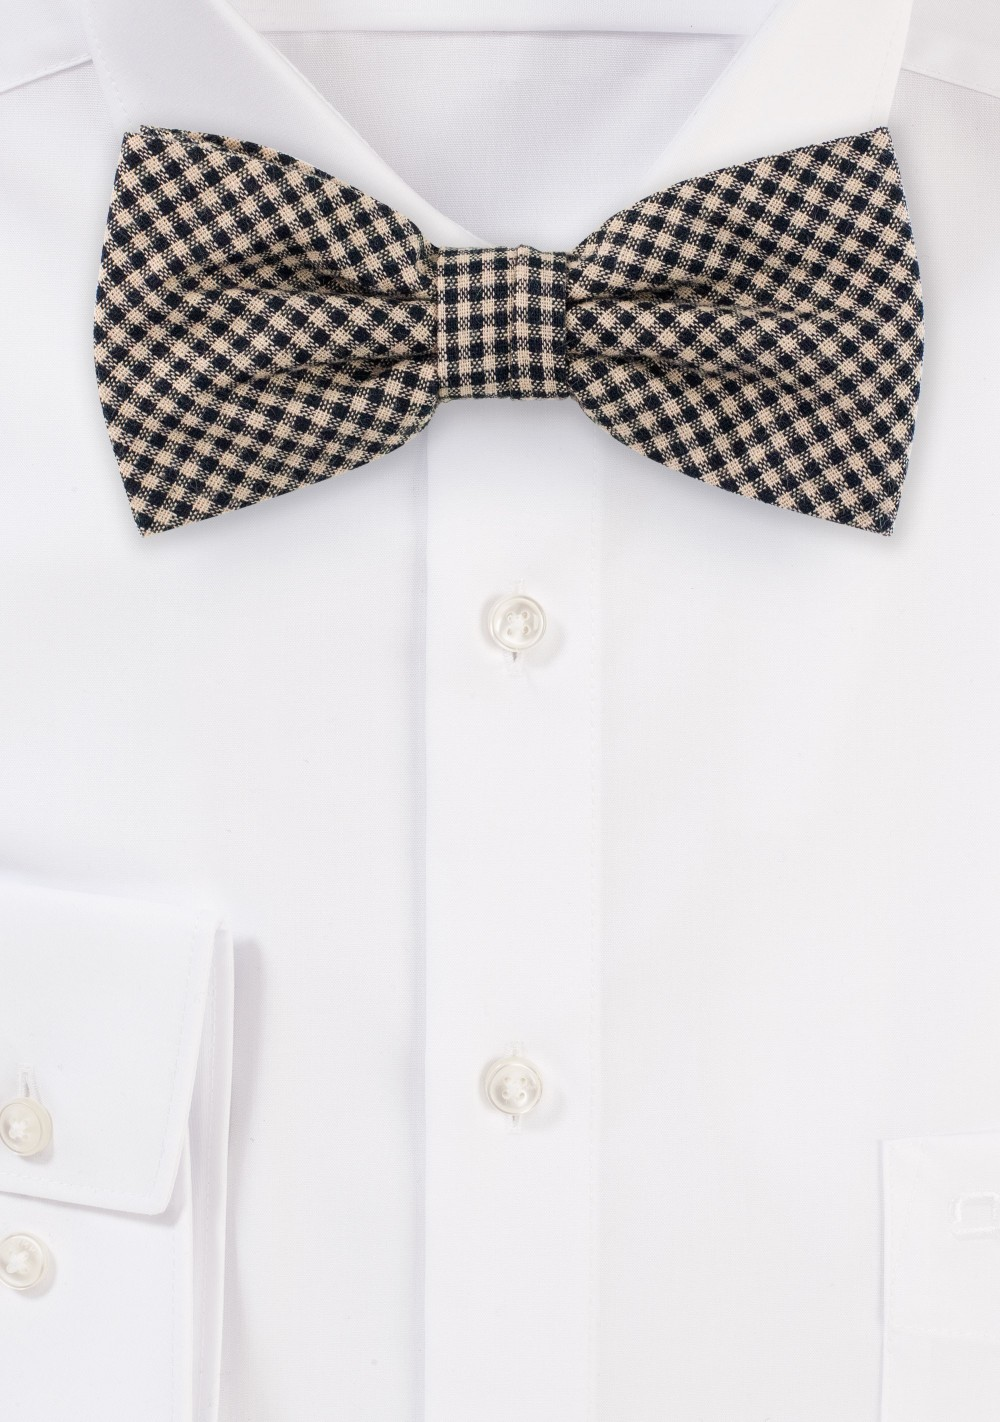 Micro Check Tweed Bow Tie in Brown